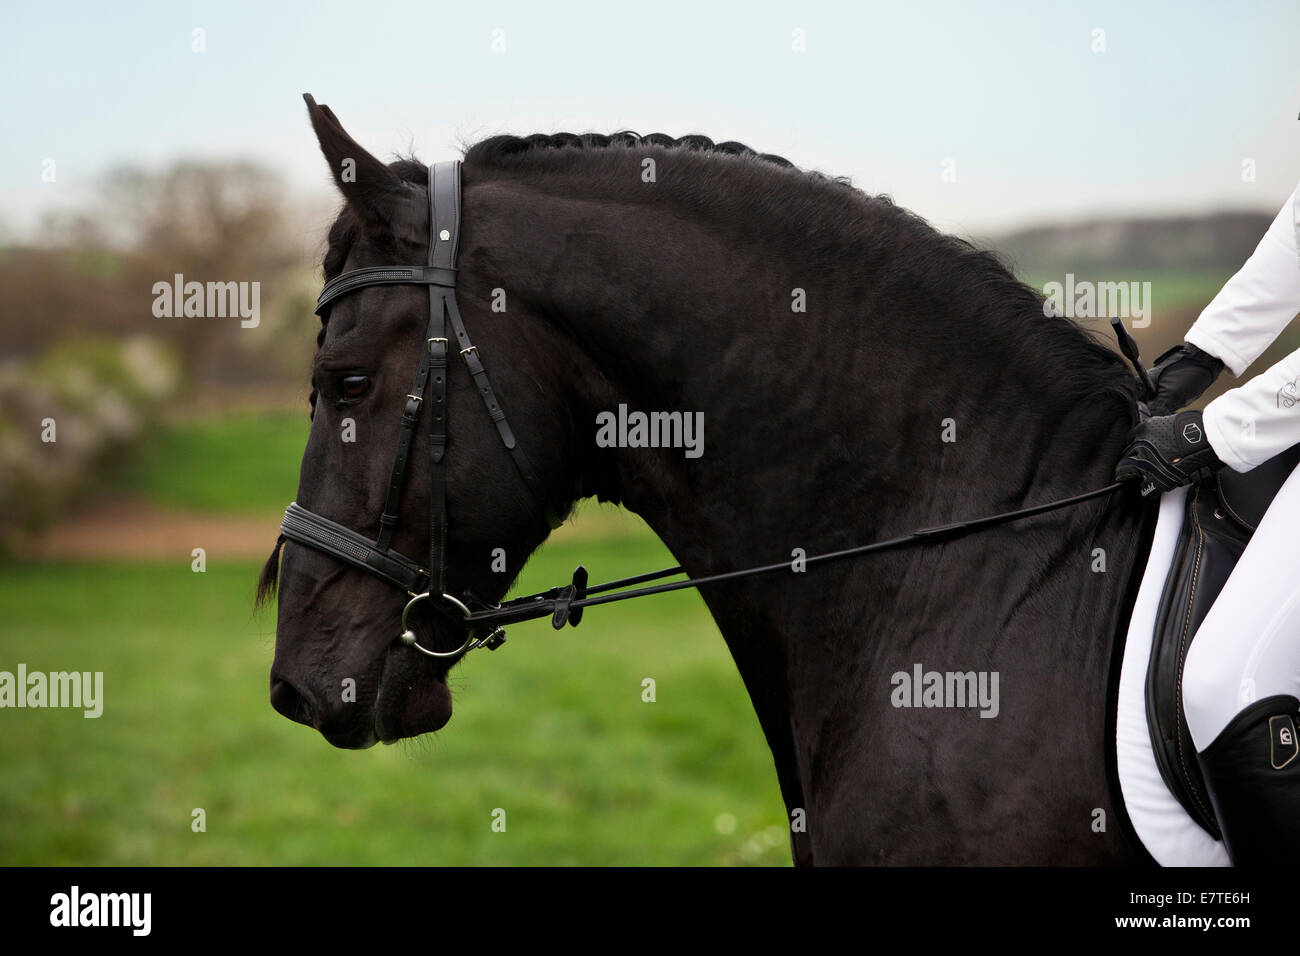 Friesian or Frisian horse, stallion, English bridle, head position in profile - Stock Image